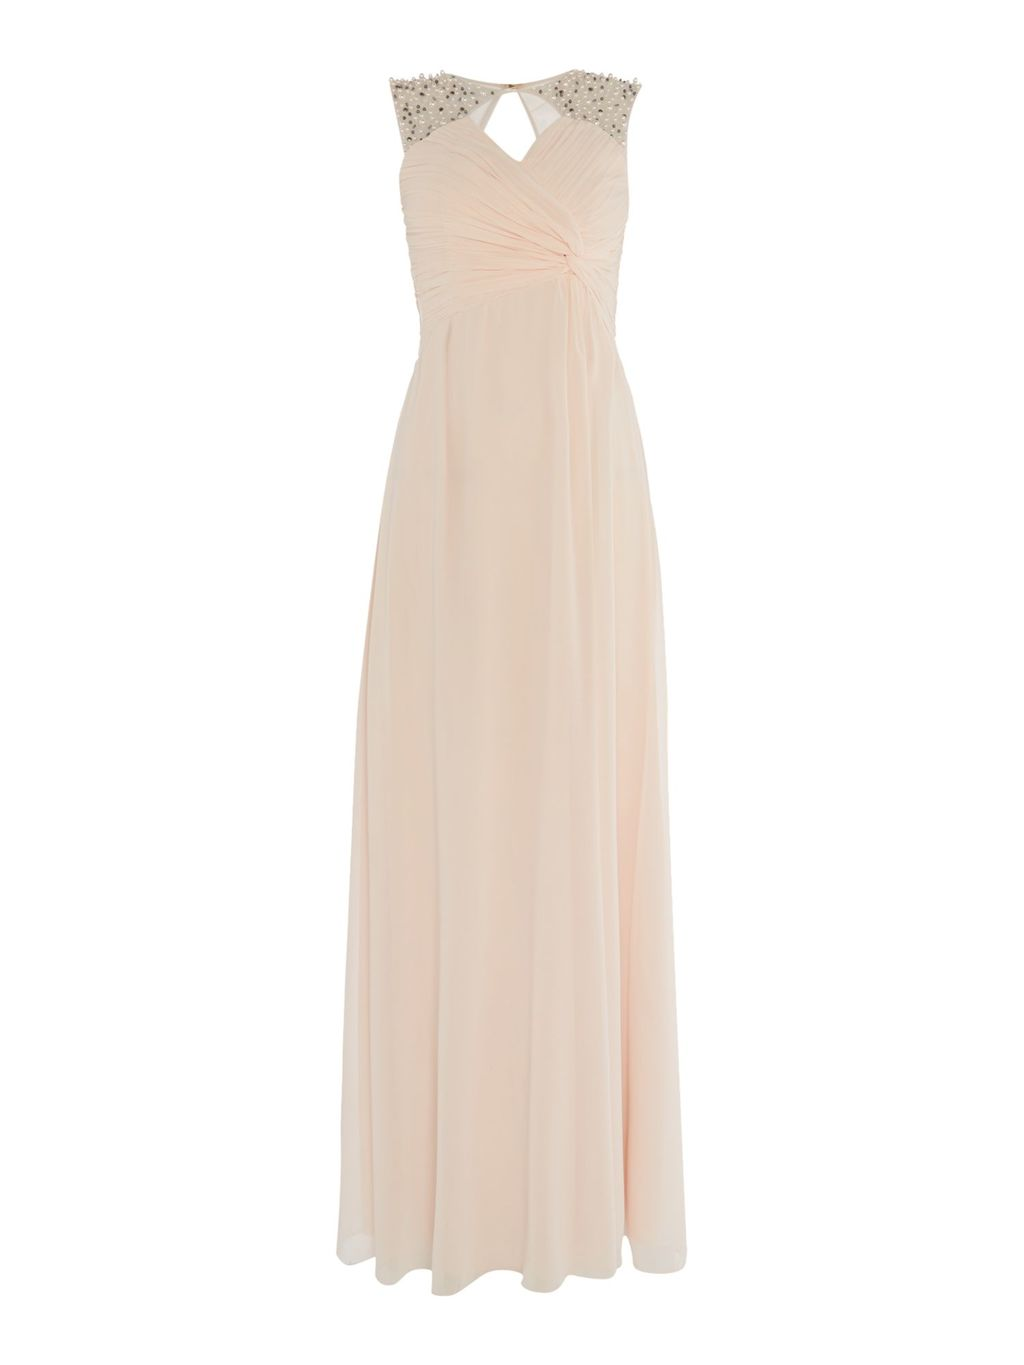 Embellished Shoulder And Drape Front Dress, Nude - neckline: low v-neck; pattern: plain; sleeve style: sleeveless; style: maxi dress; predominant colour: blush; secondary colour: silver; length: floor length; fit: fitted at waist & bust; fibres: polyester/polyamide - stretch; occasions: occasion; sleeve length: sleeveless; texture group: crepes; pattern type: fabric; season: s/s 2016; wardrobe: event; embellishment: contrast fabric; embellishment location: shoulder